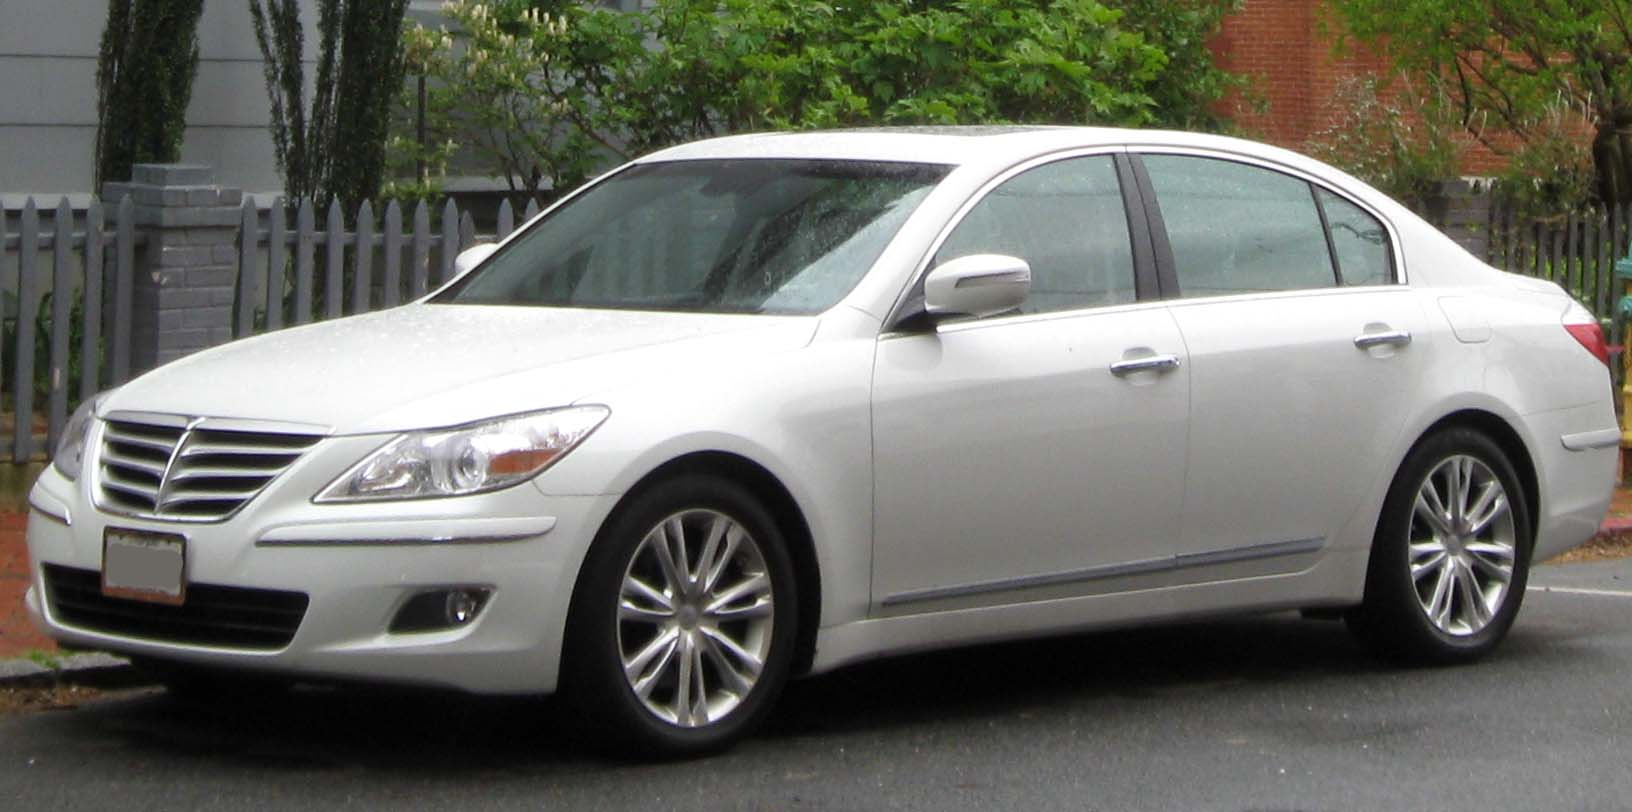 Hyundai Genesis 3.3 2010 photo - 2